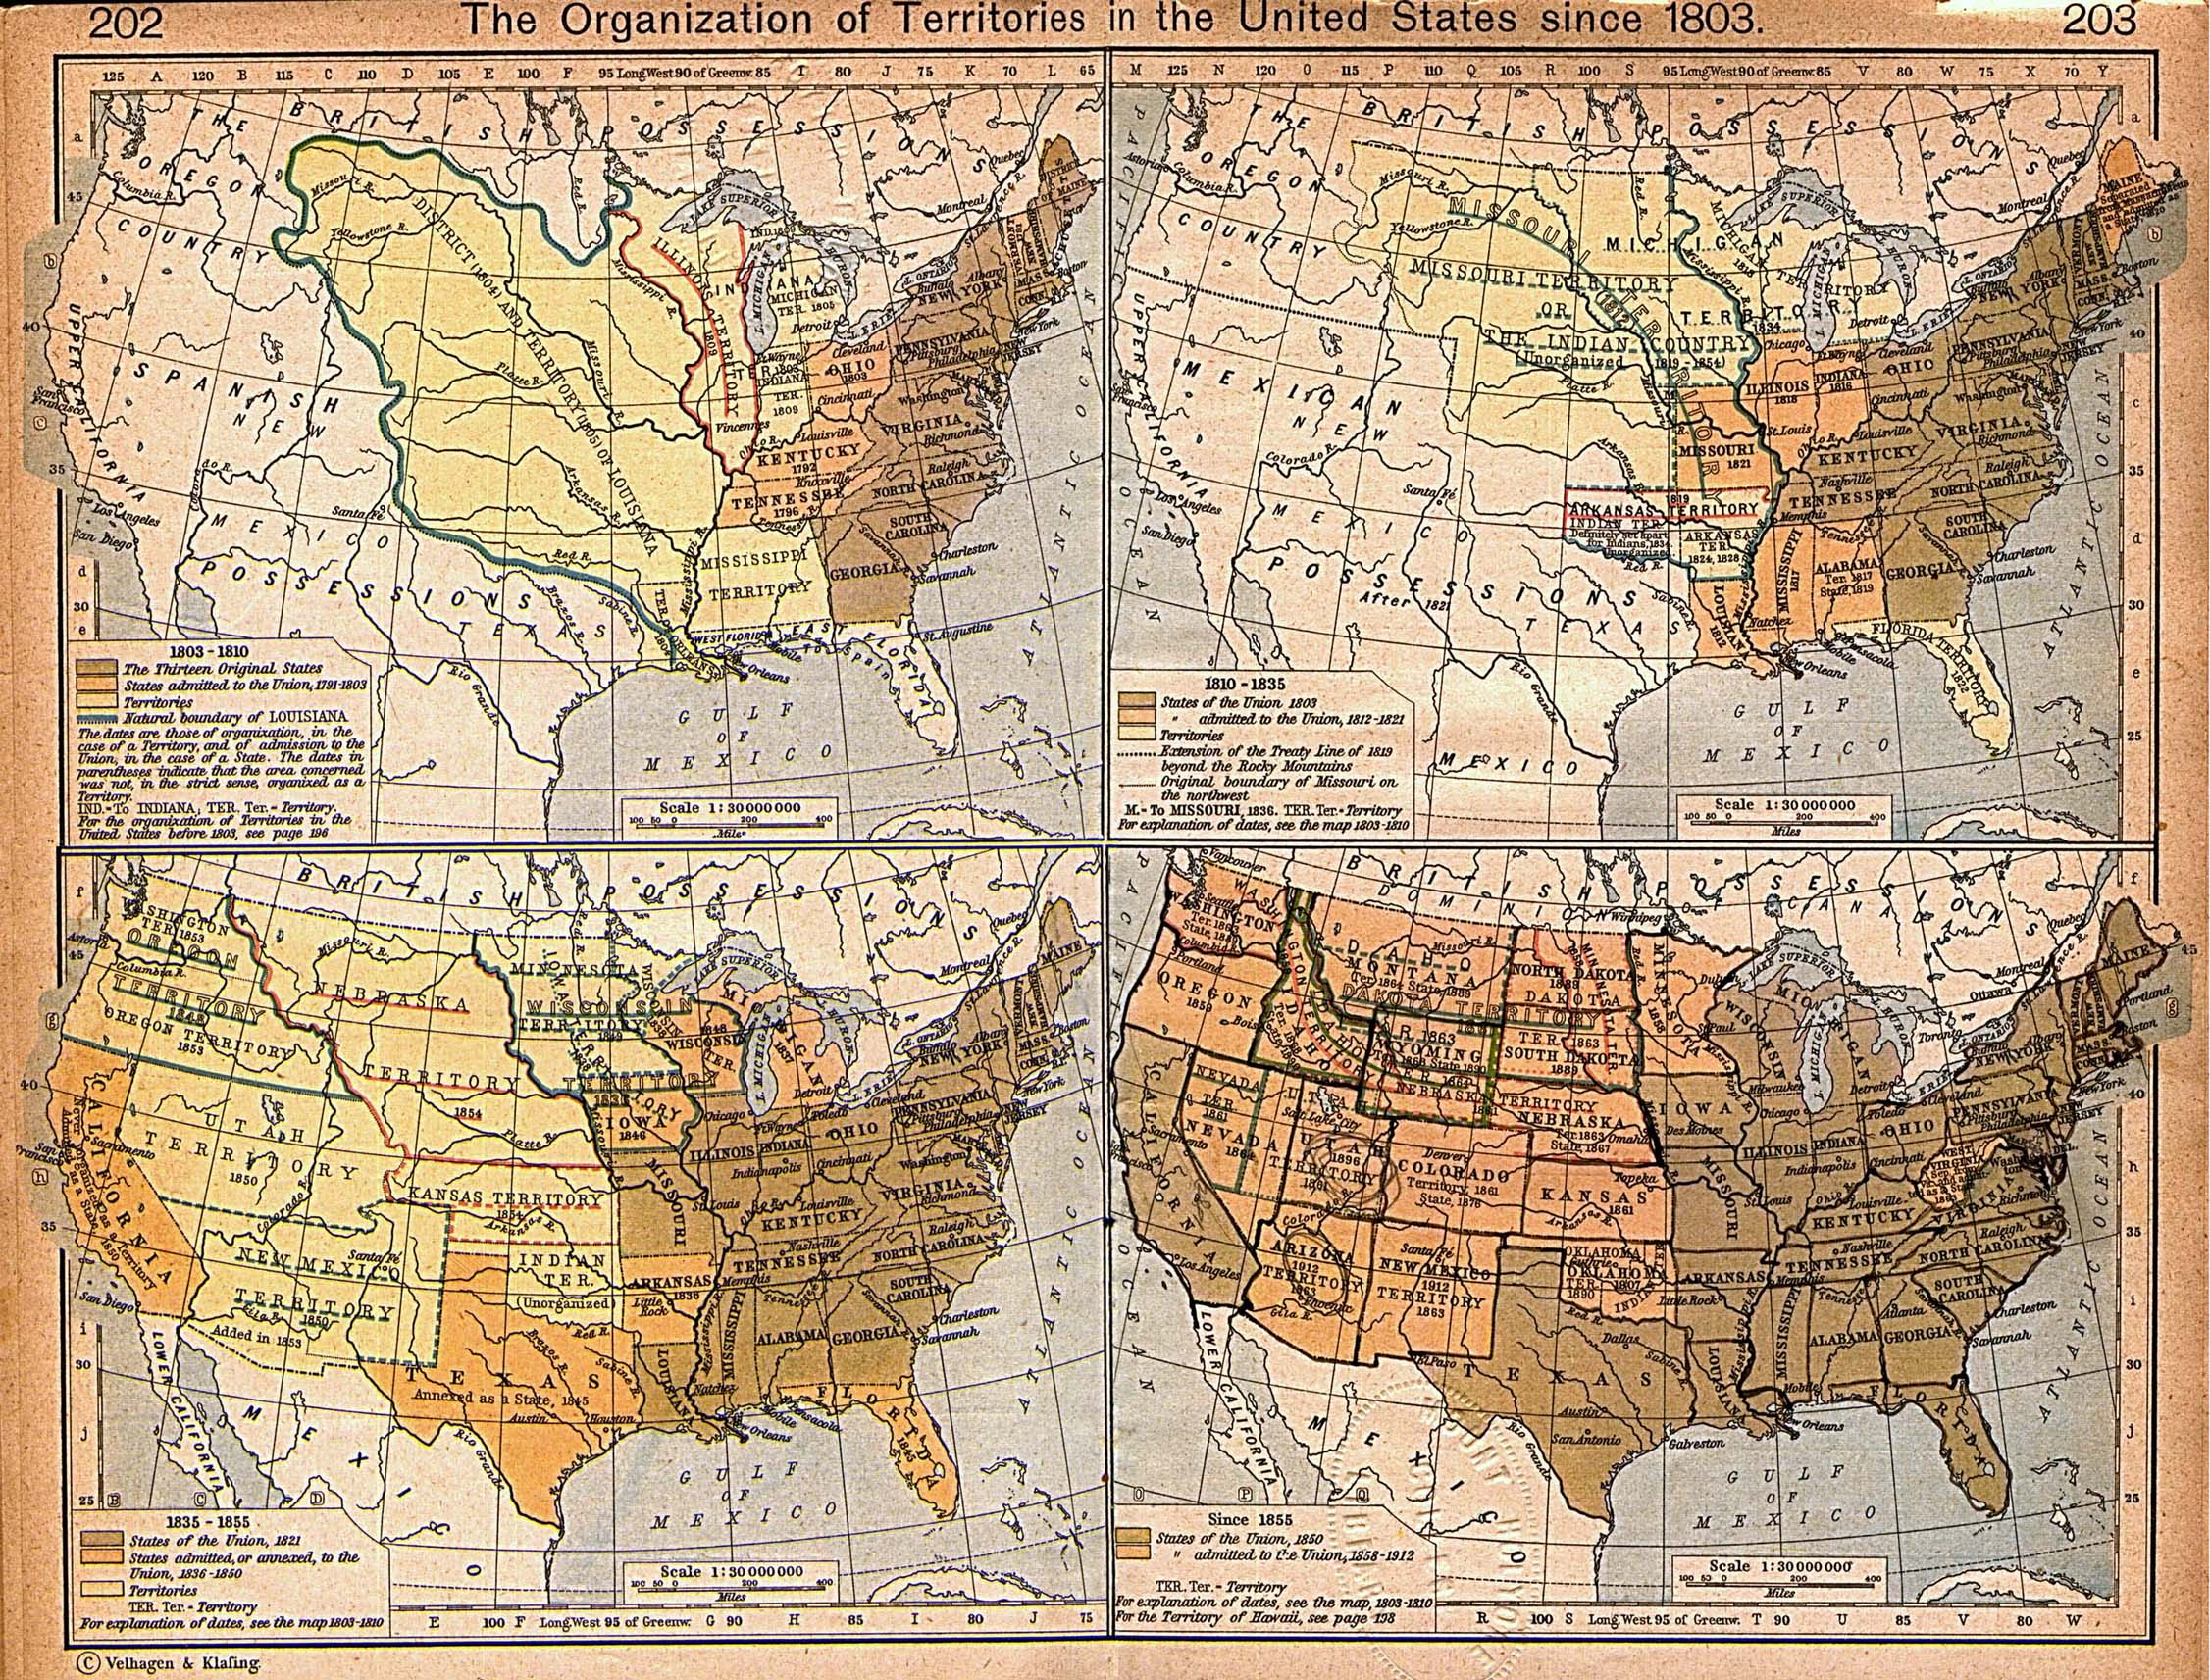 Territorial expansion of the continental United States of America, 1803-1912.